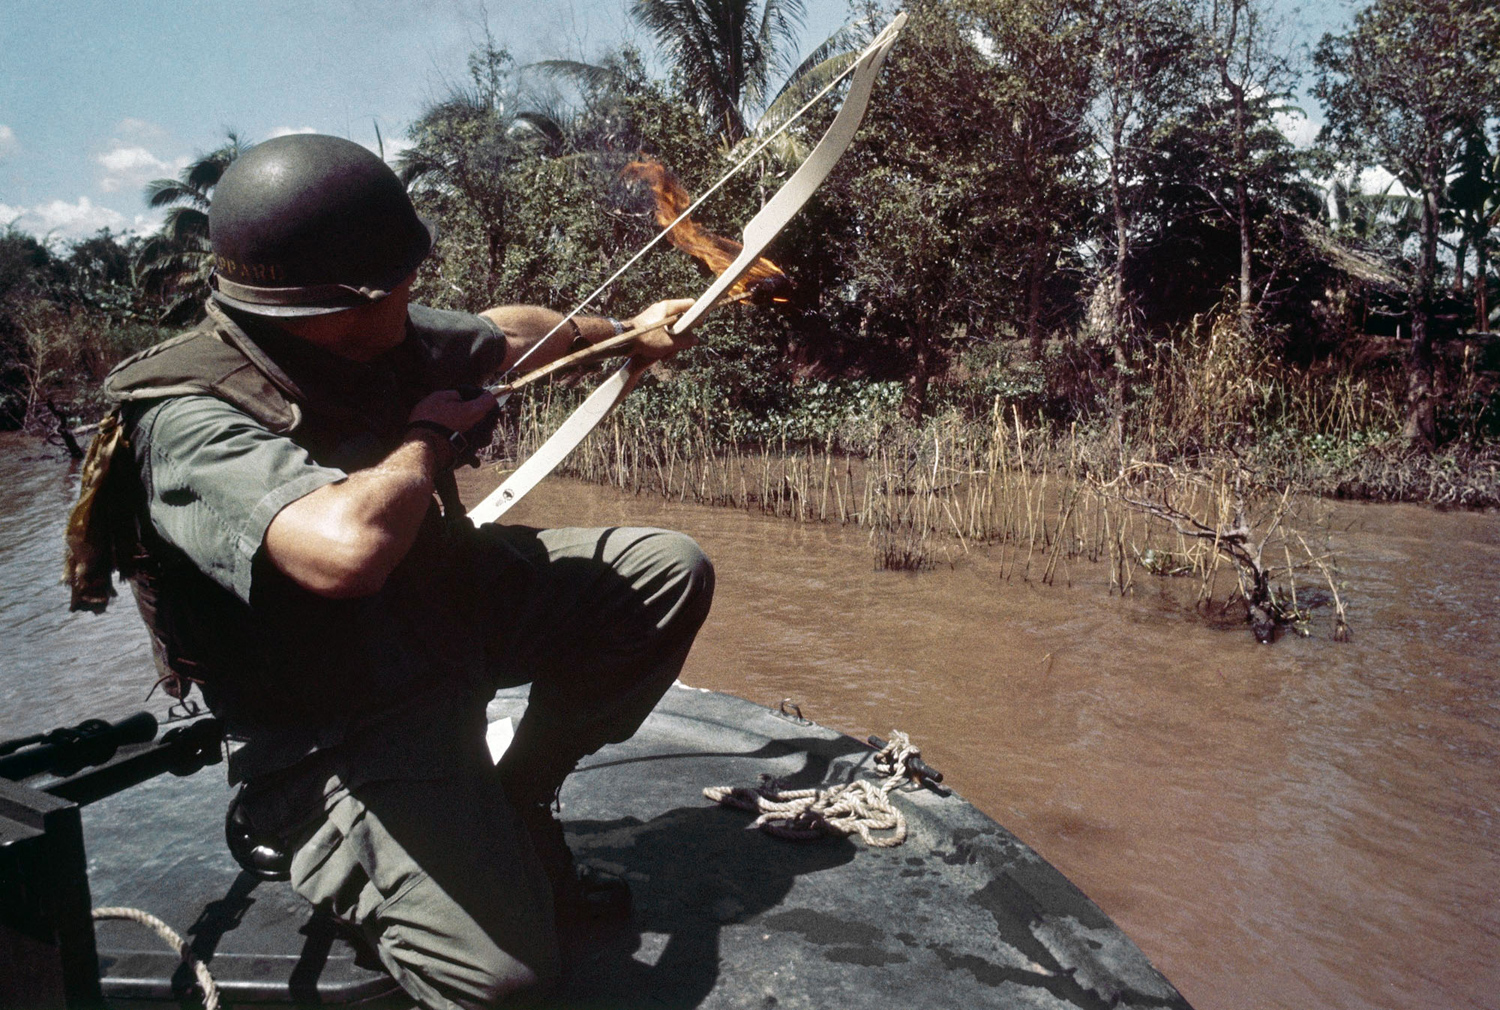 top gear helicopter with This Photo Of A Navy  Mander Shooting A Flaming Arrow In Vietnam Is Beyond Gripping on This Photo Of A Navy  mander Shooting A Flaming Arrow In Vietnam Is Beyond Gripping likewise Bell Helicopter Co in addition Flight Simulator Games additionally The Top 10 Movie Guns additionally Top 5 Secret Military Aircrafts.